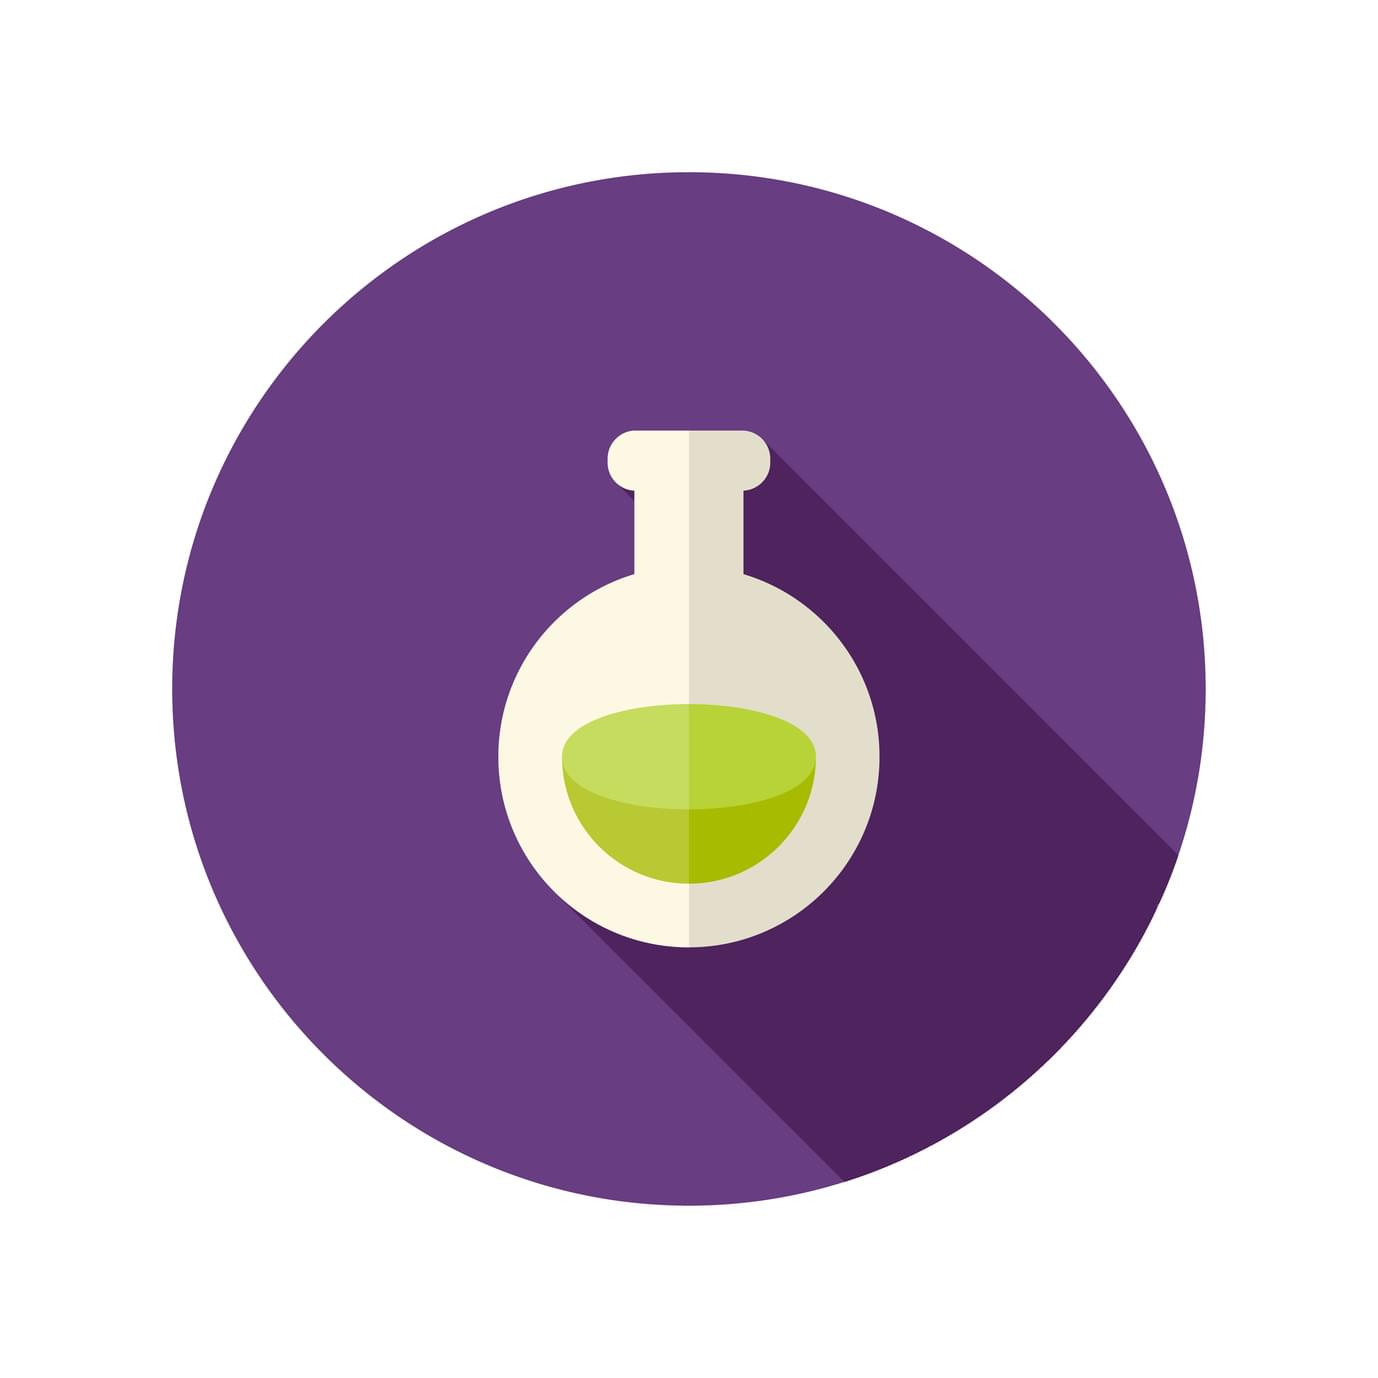 Potion vector illustration